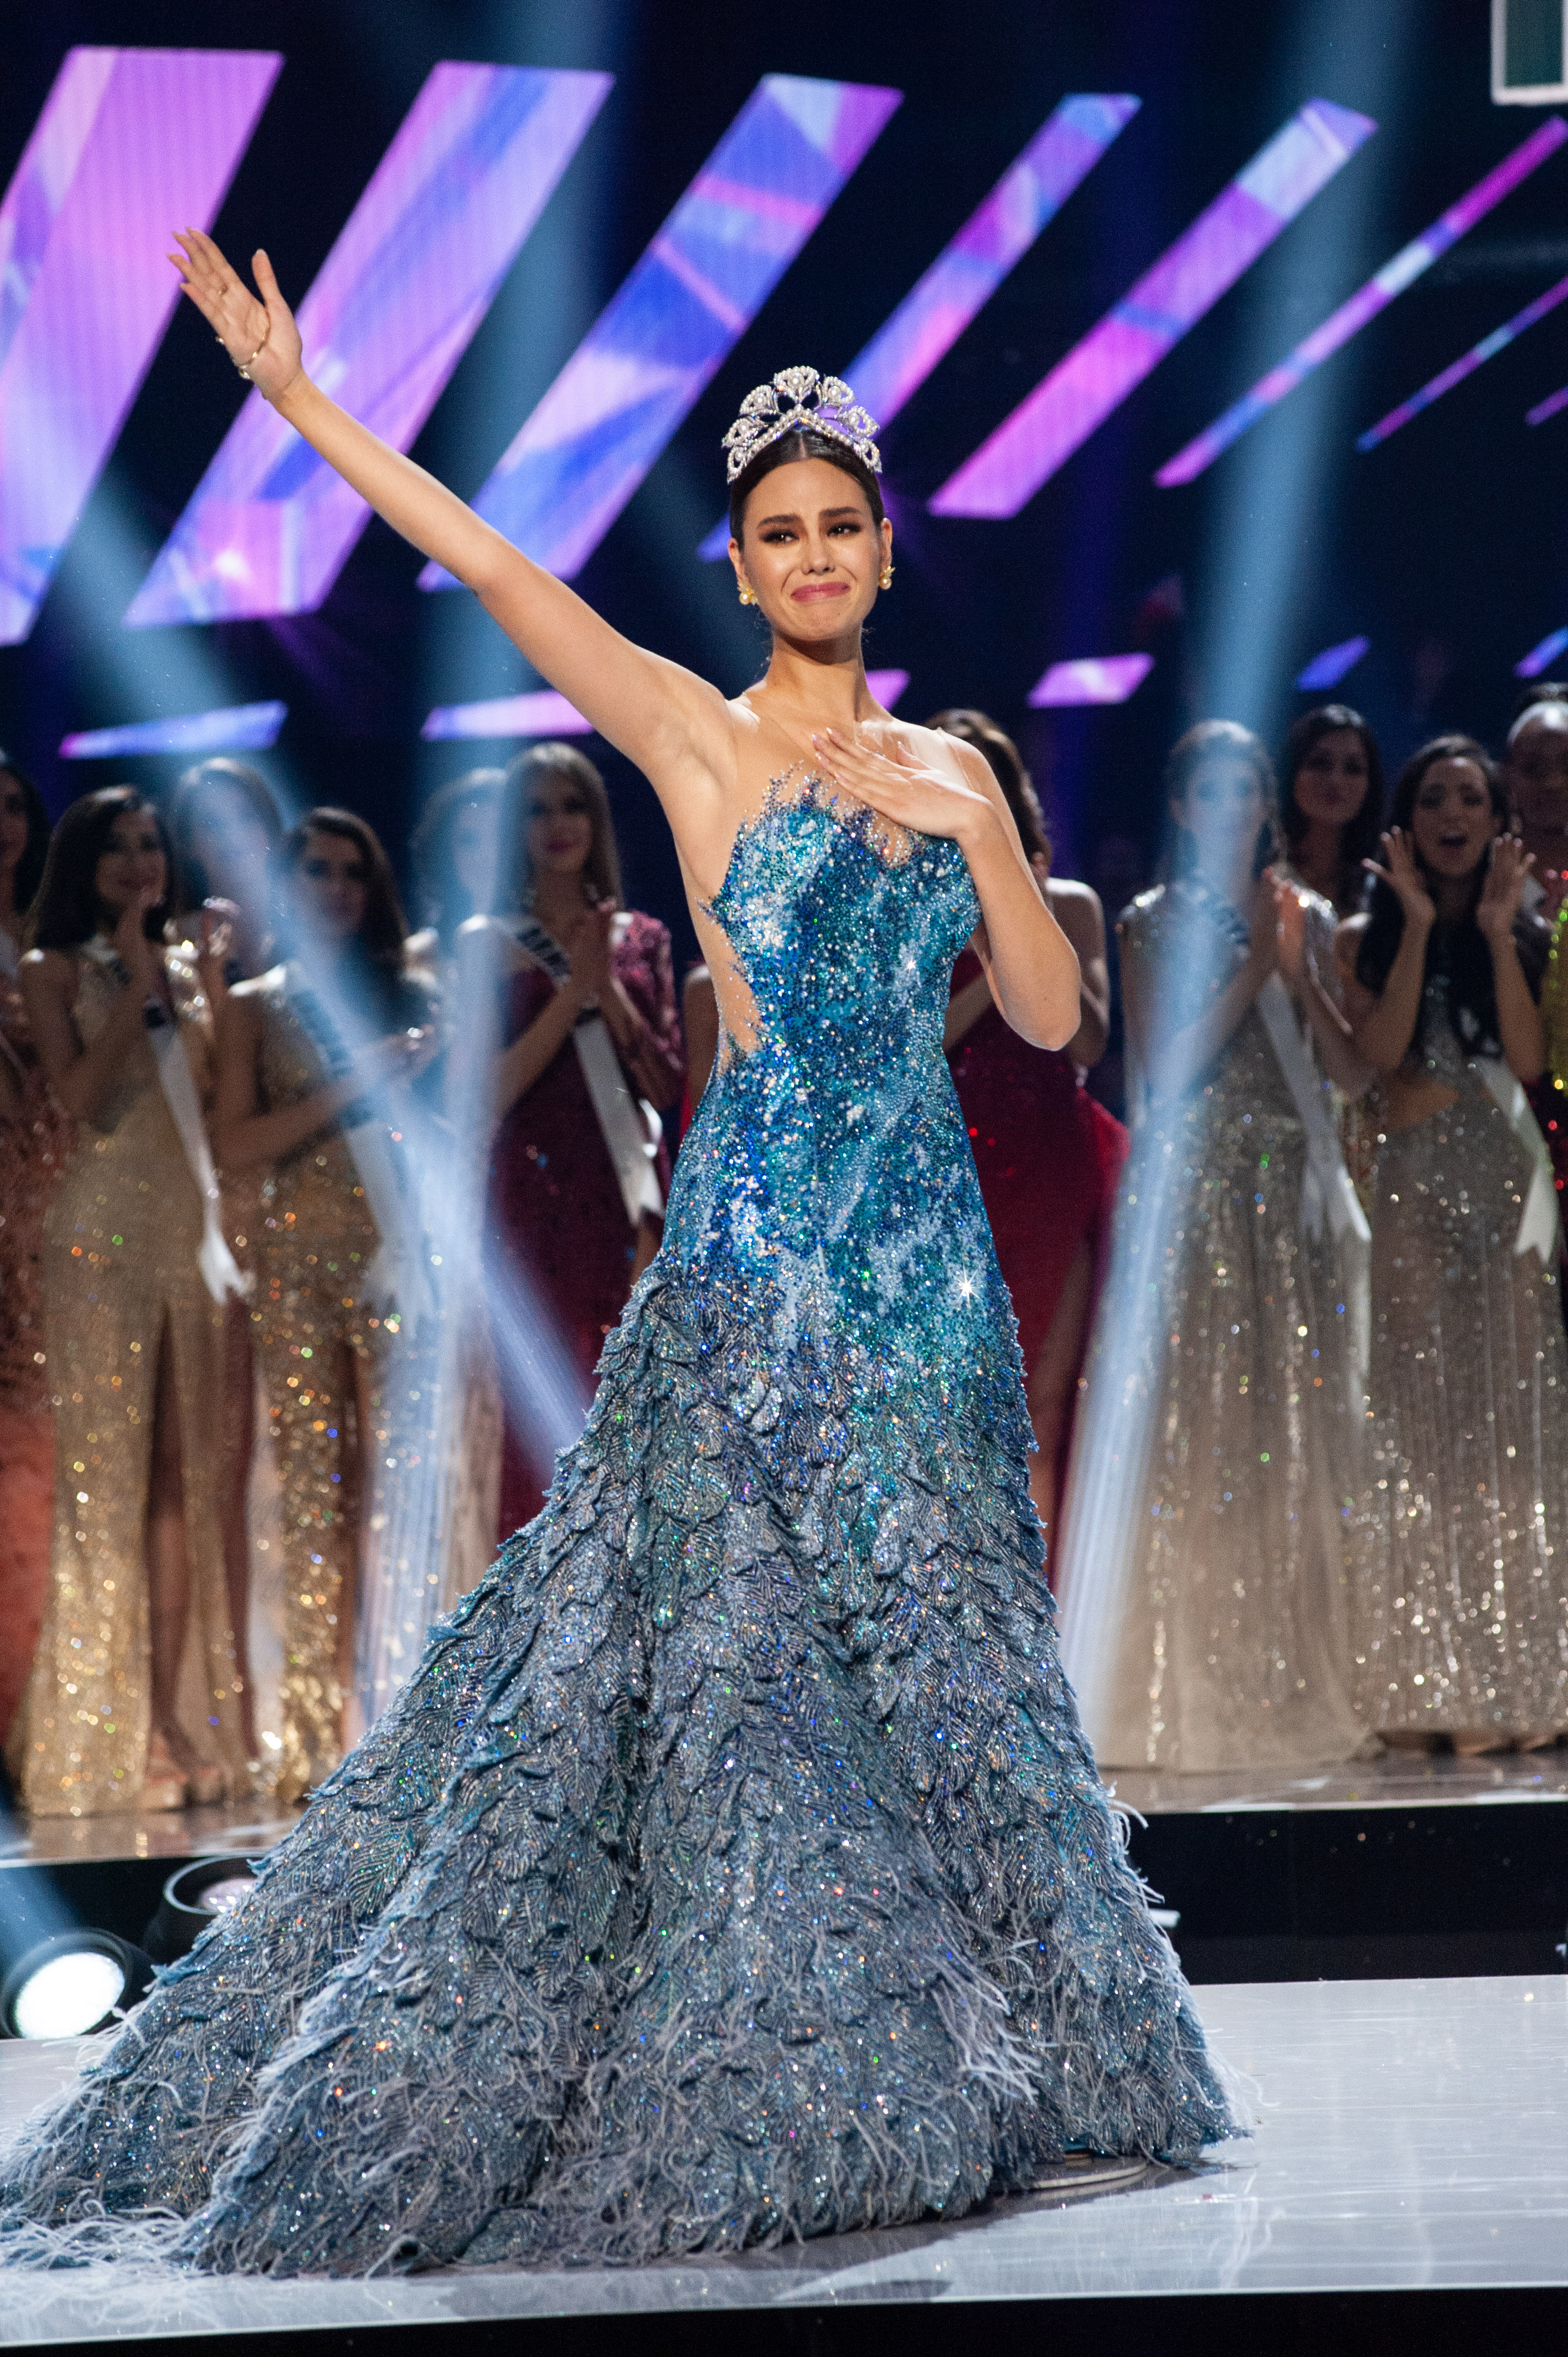 PURPOSEFUL REIGN. Catriona Gray makes her final wave and walk as Miss Universe 2018. Photo courtesy of the Miss Universe Organization